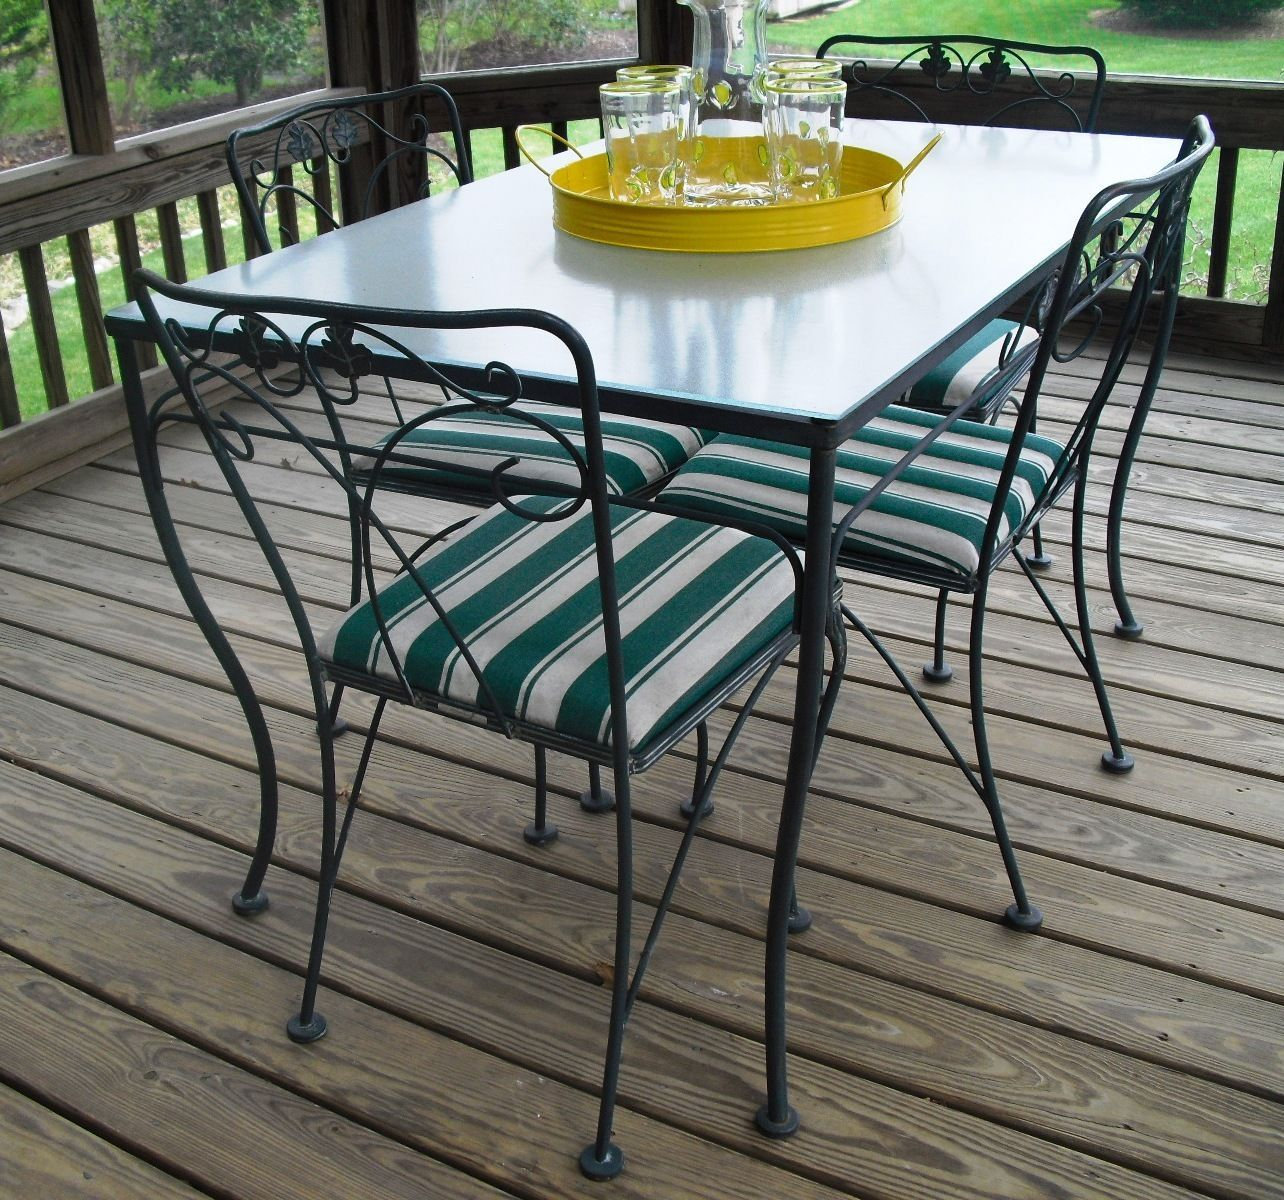 wrought iron kitchen chairs Vintage Meadowcraft Wrought Iron Glass Top Table Chairs Dining Local Pickup MD eBay